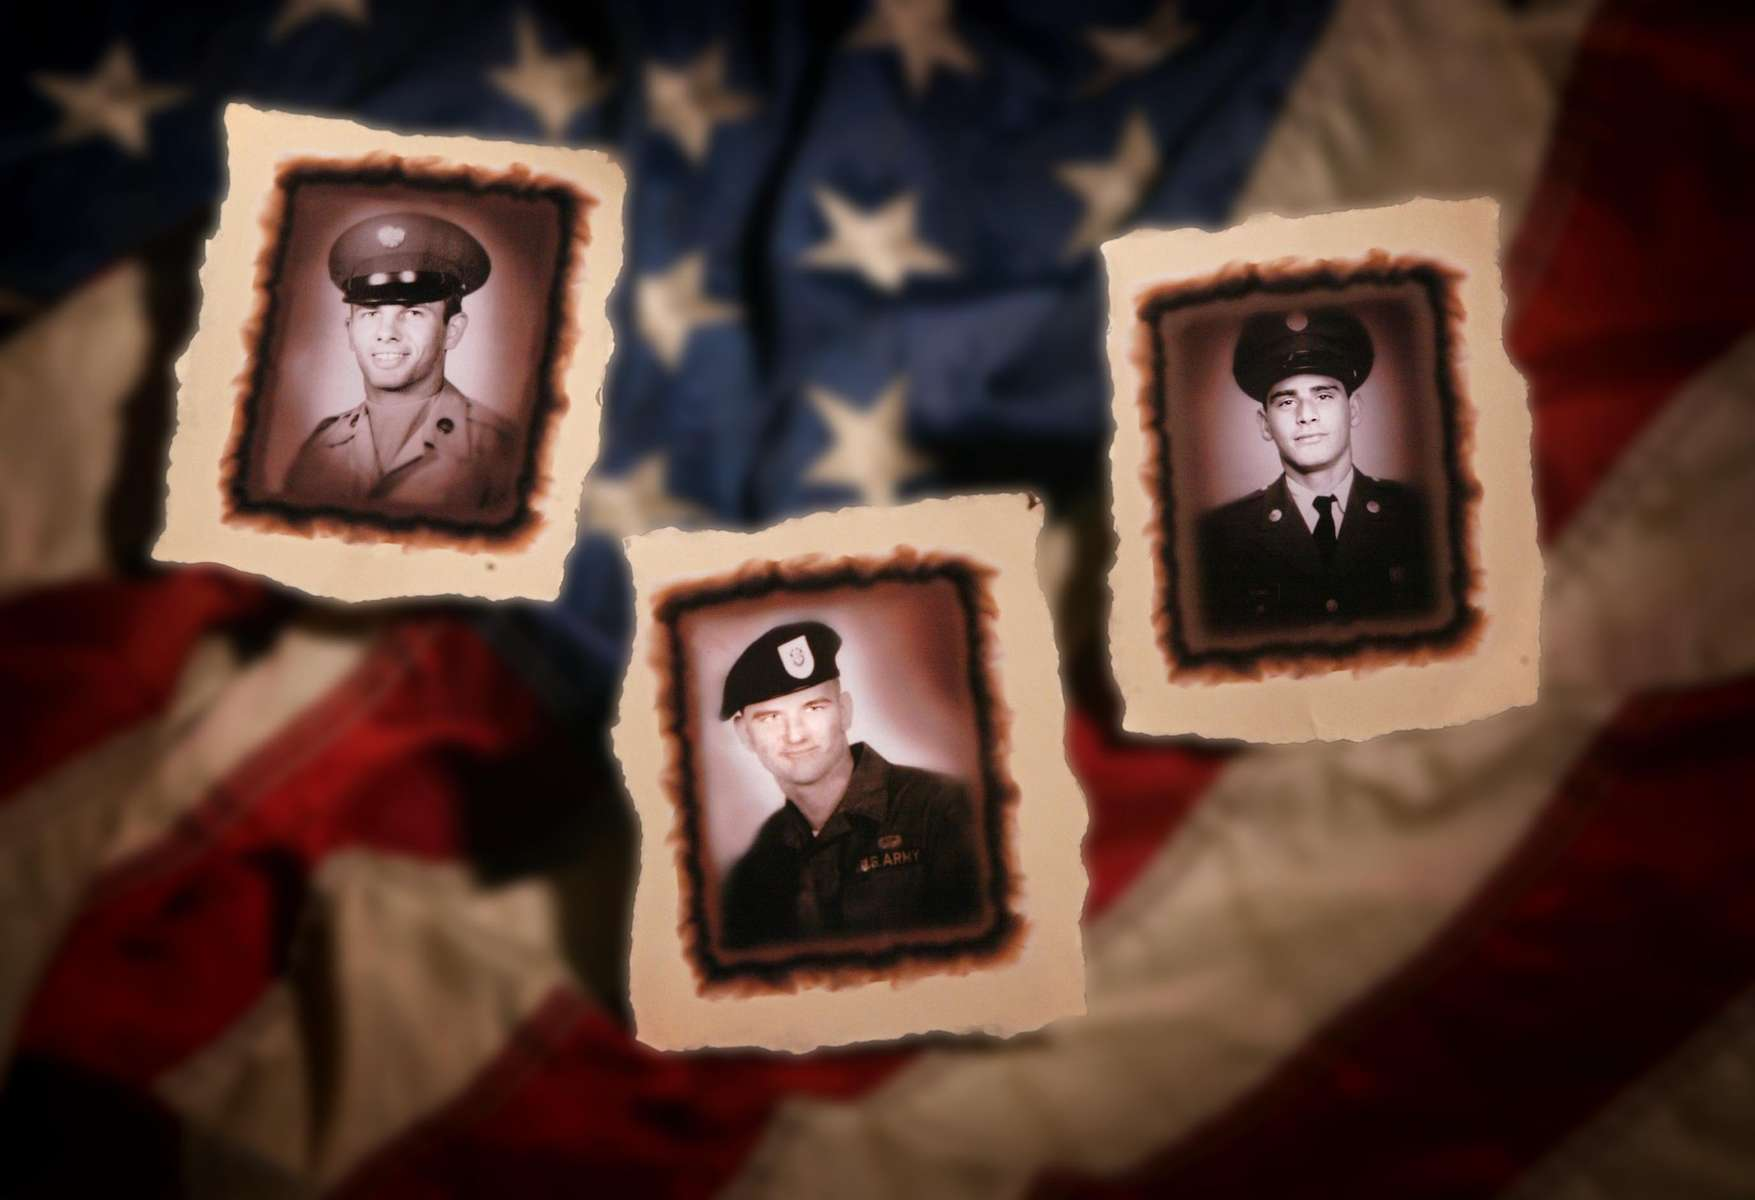 Three Granite City Soldiers Pfc. Richard N. Kimball Jr., left, Pfc. William C. Hinkle, center, and Sgt. Michael E. Adams were killed in Vietnam within five days of each other in November 1967.  The three soldiers will be specially honored during a ceremony on Memorial Day in Granite City.Photo Illustration by David Carson/PD